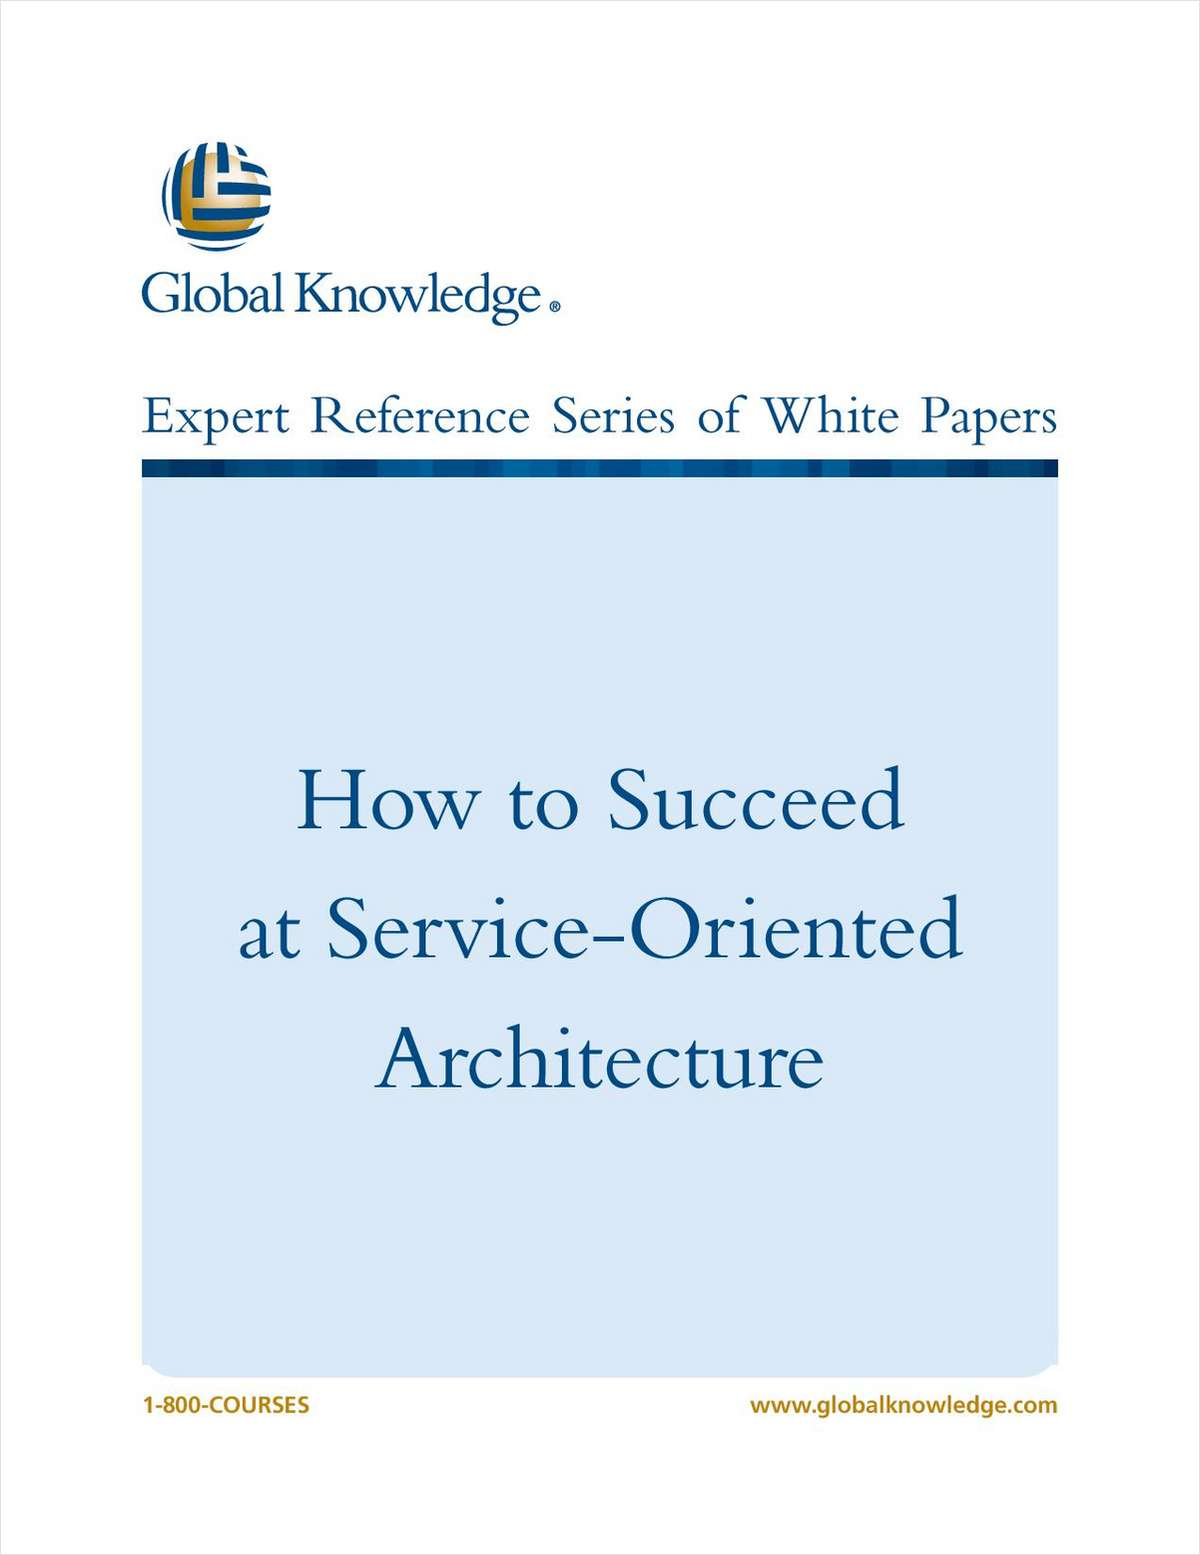 How to Succeed at Service-Oriented Architecture